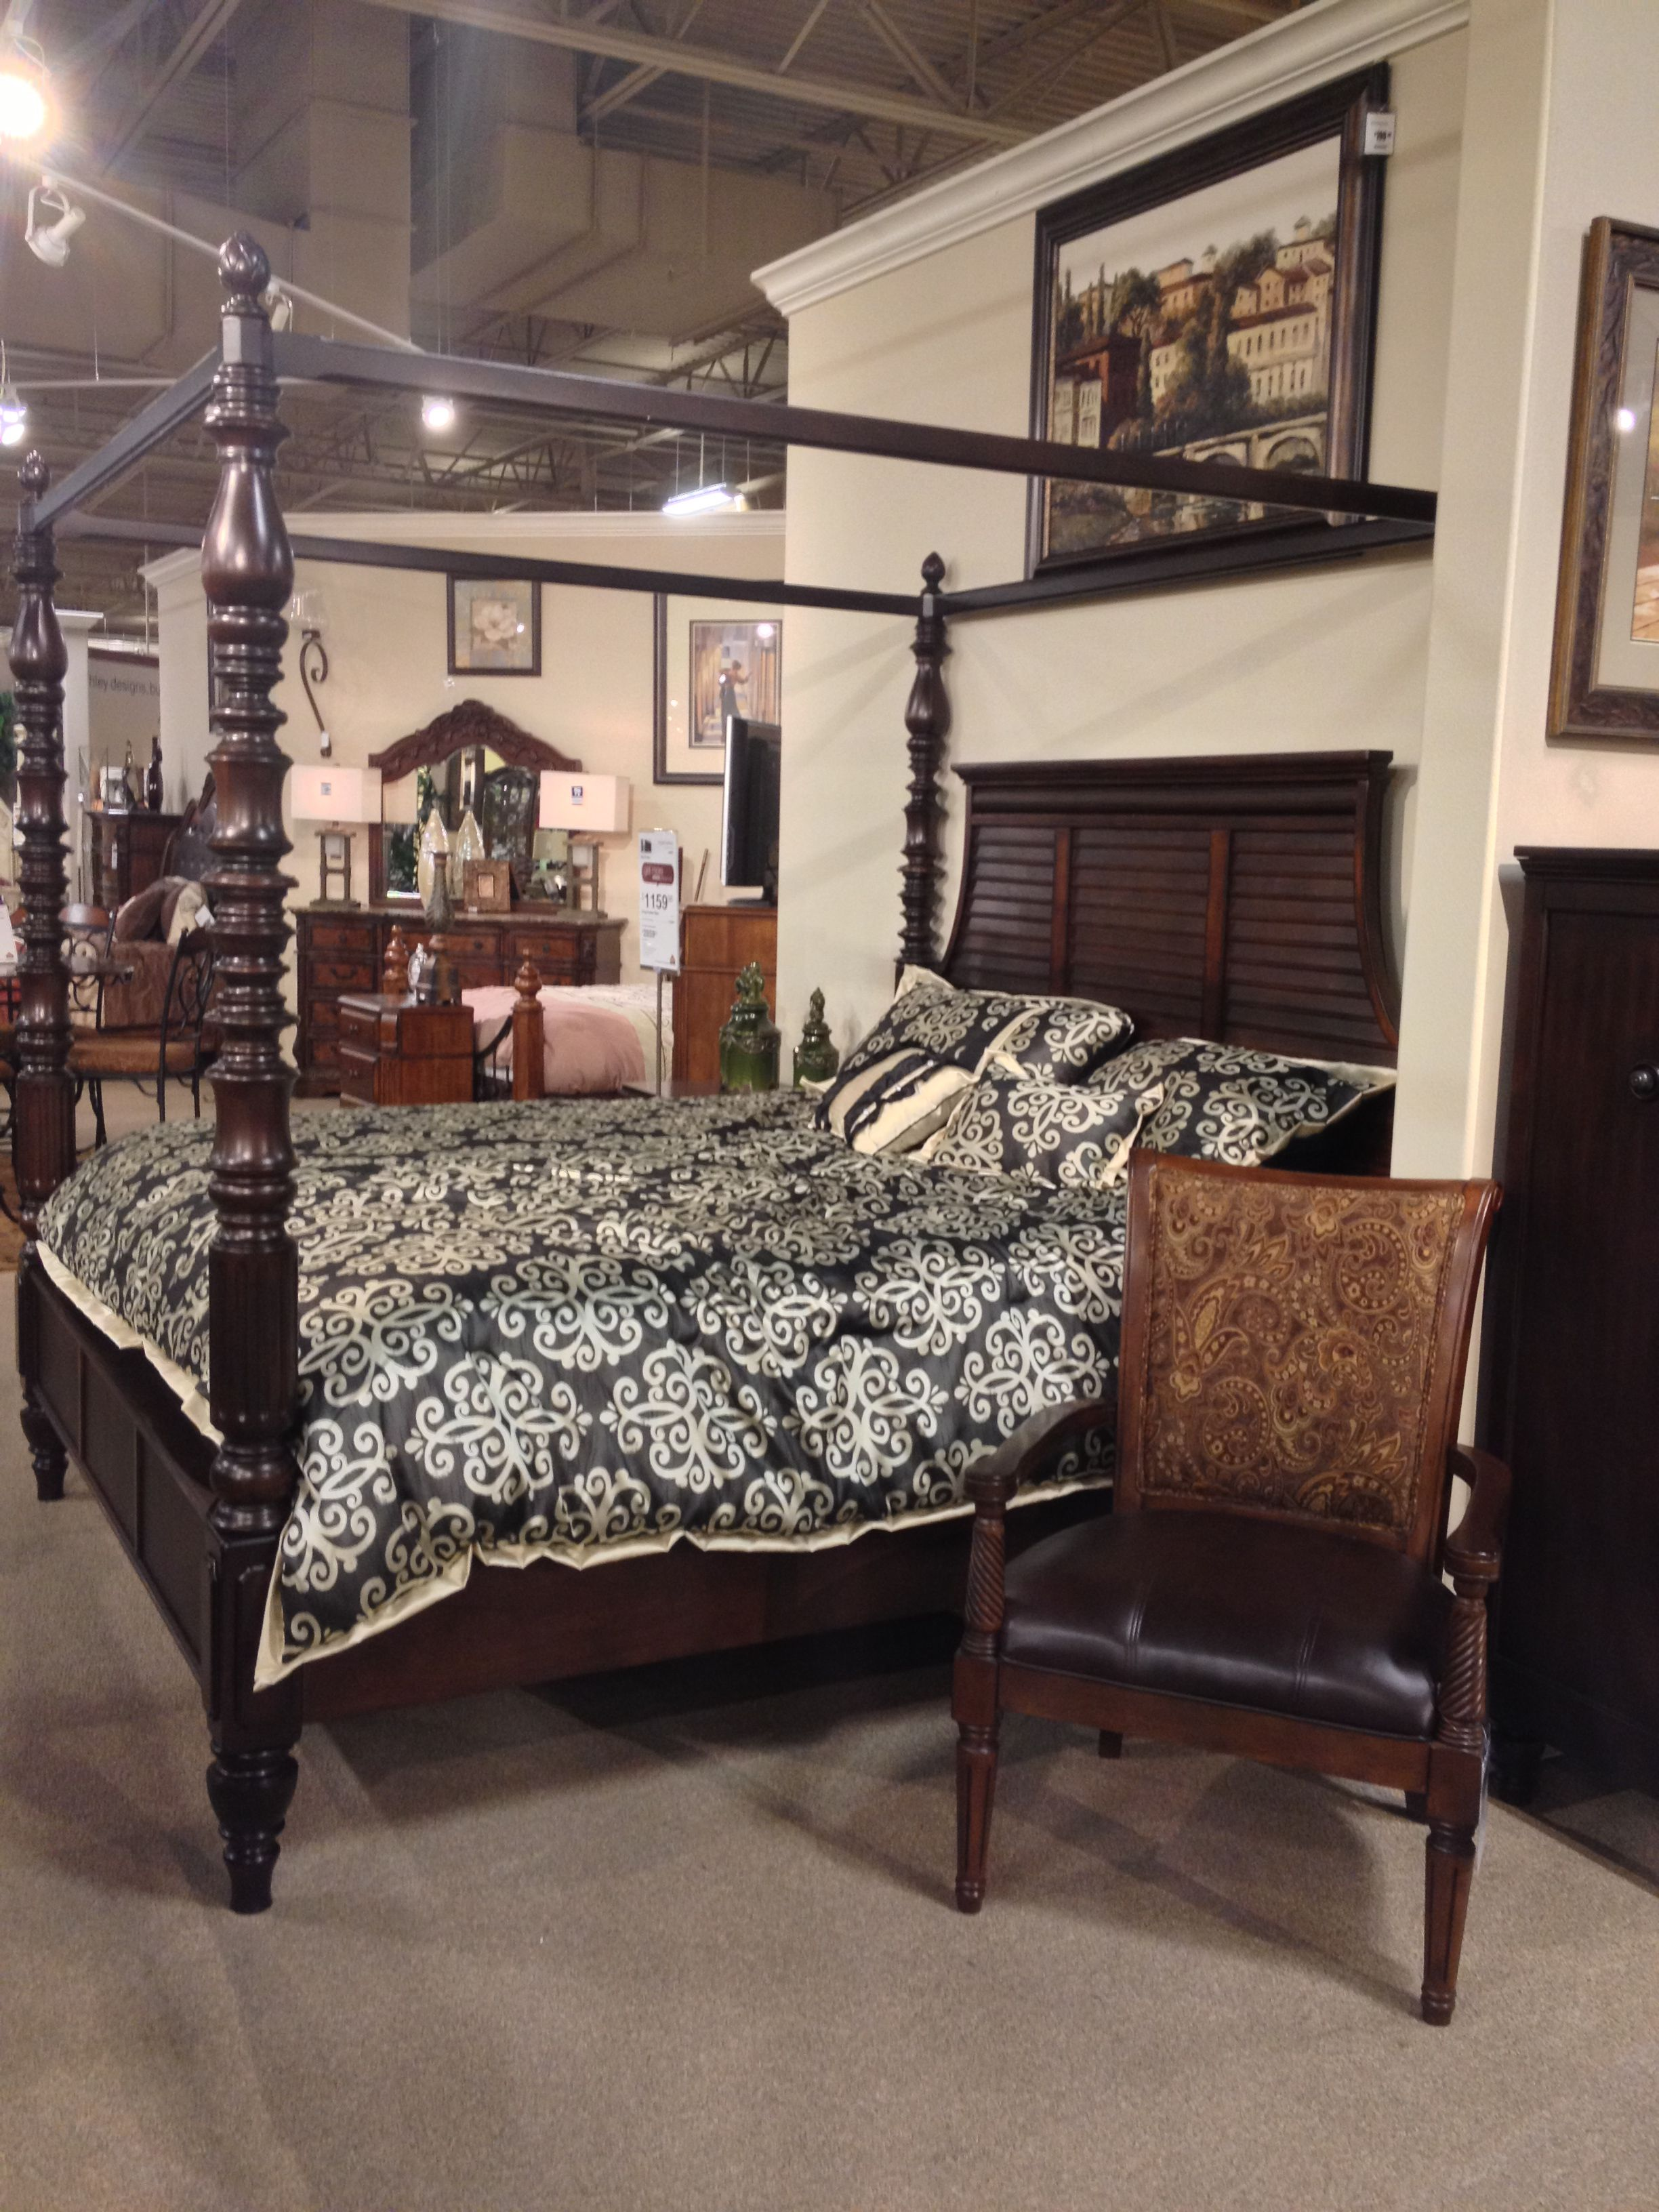 4 Poster Canopy King Bed Key Town King Queen Poster Bed Ashley Furniture In Tricities